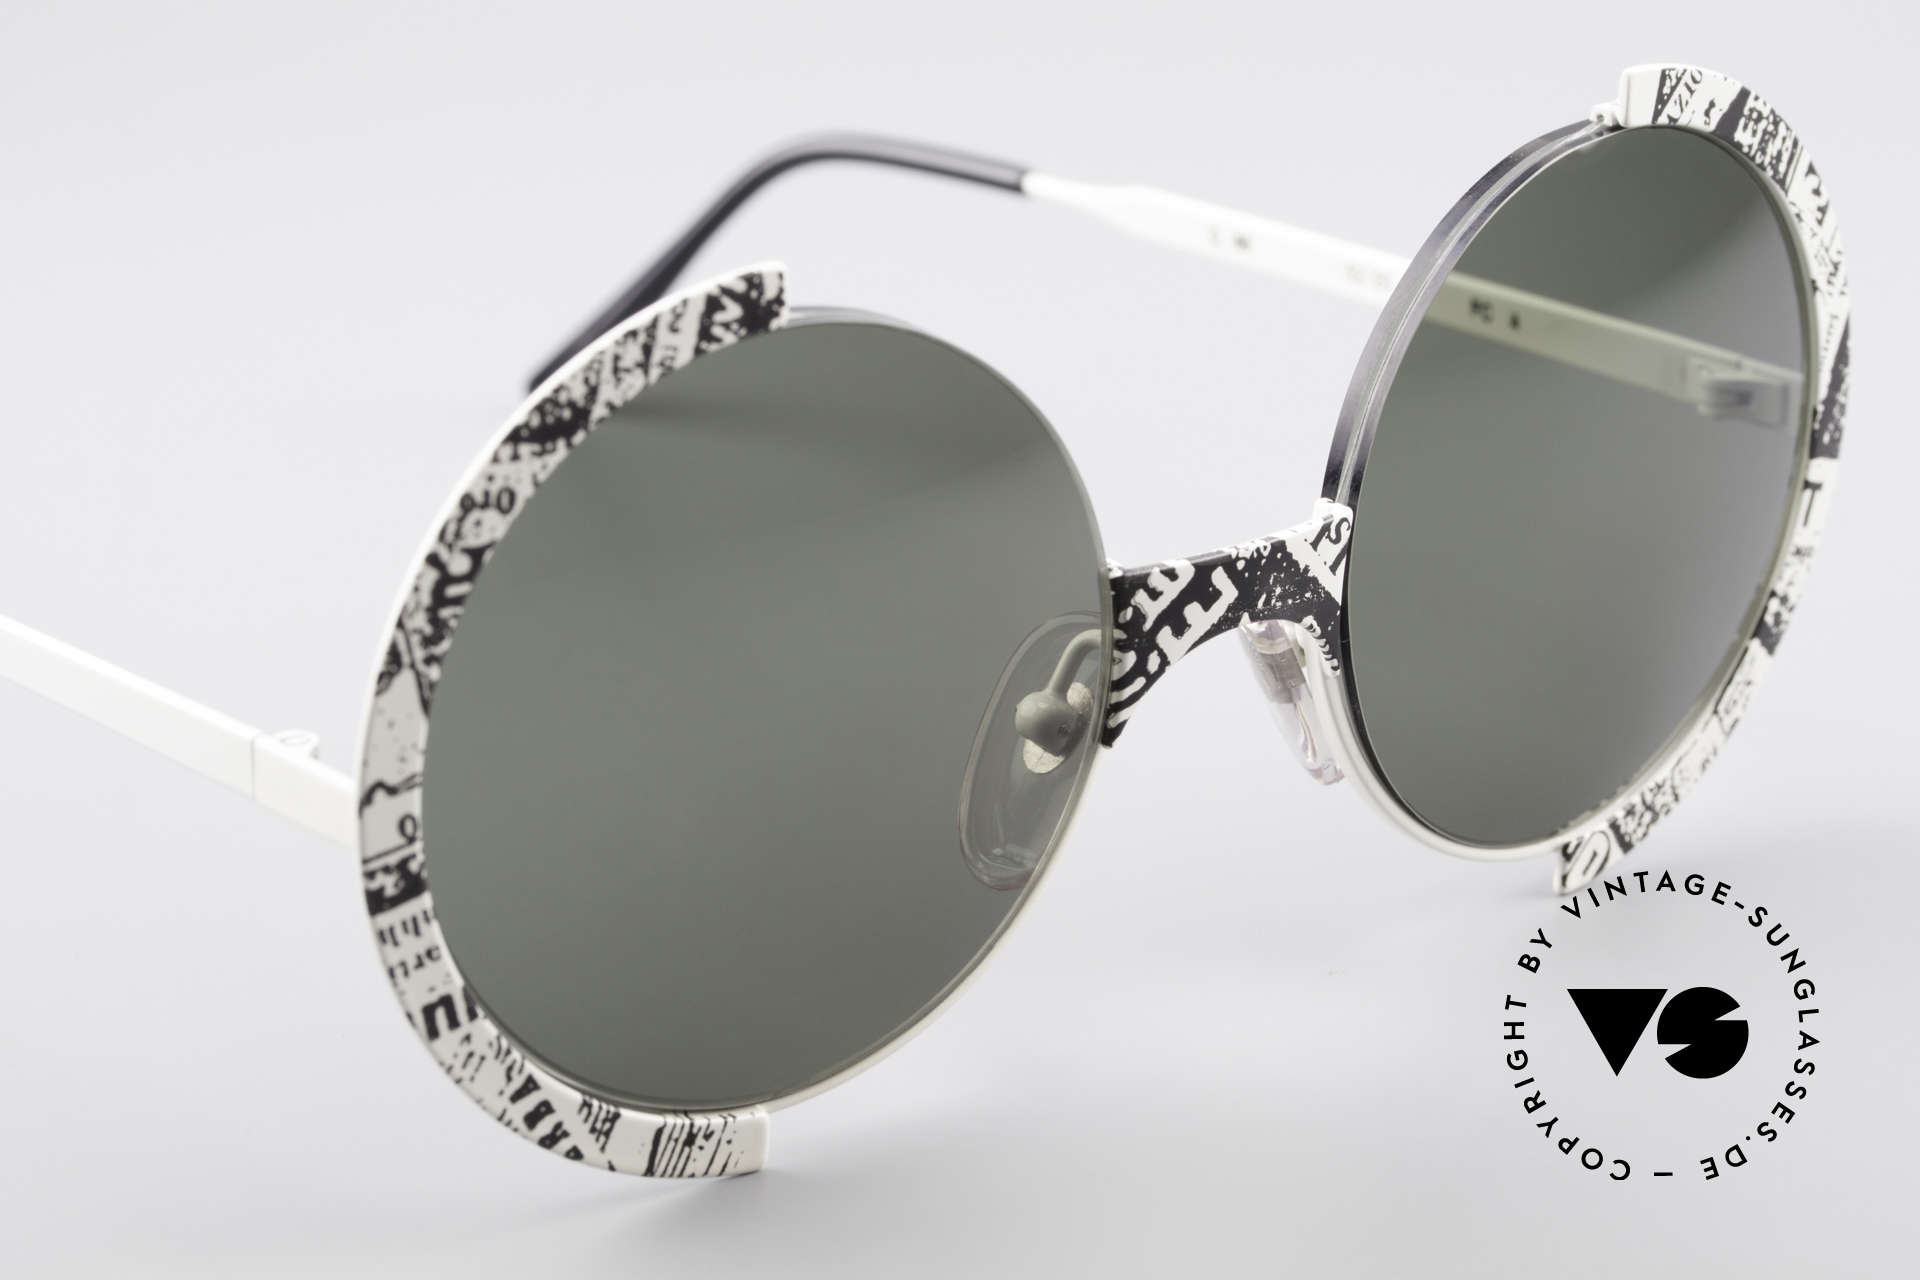 Casanova FC4 Fancy Newspaper Sunglasses, unworn (like all our rare vintage Casanova shades), Made for Men and Women